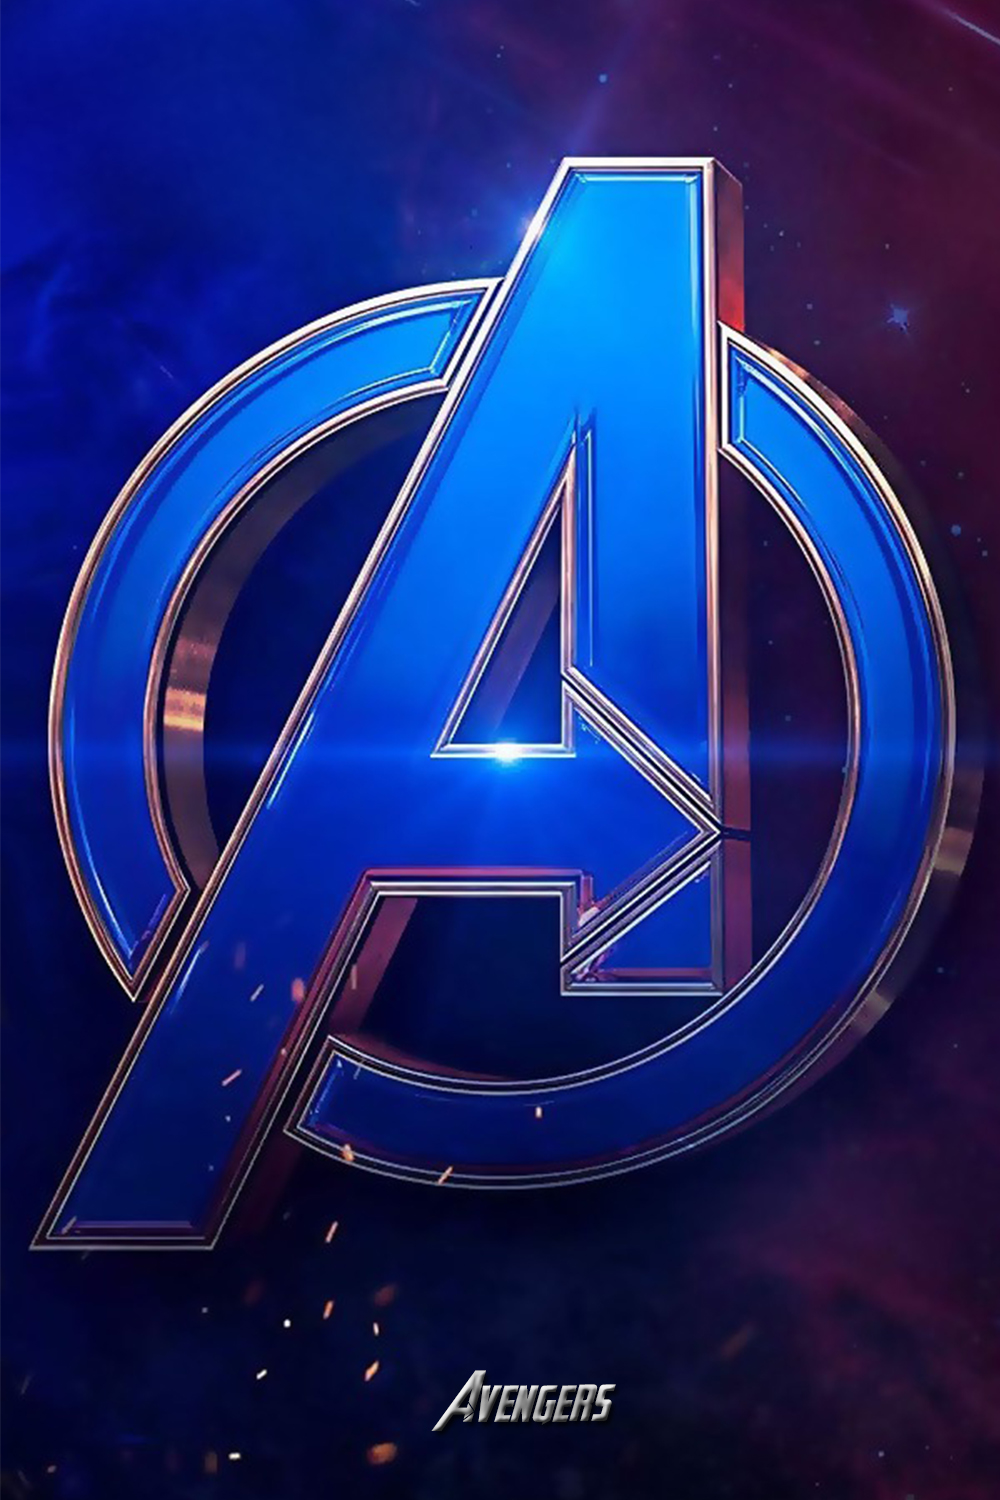 avengers logo wallpaper iphone in 2020 avengers wallpaper avengers logo marvel comics wallpaper avengers logo wallpaper iphone in 2020